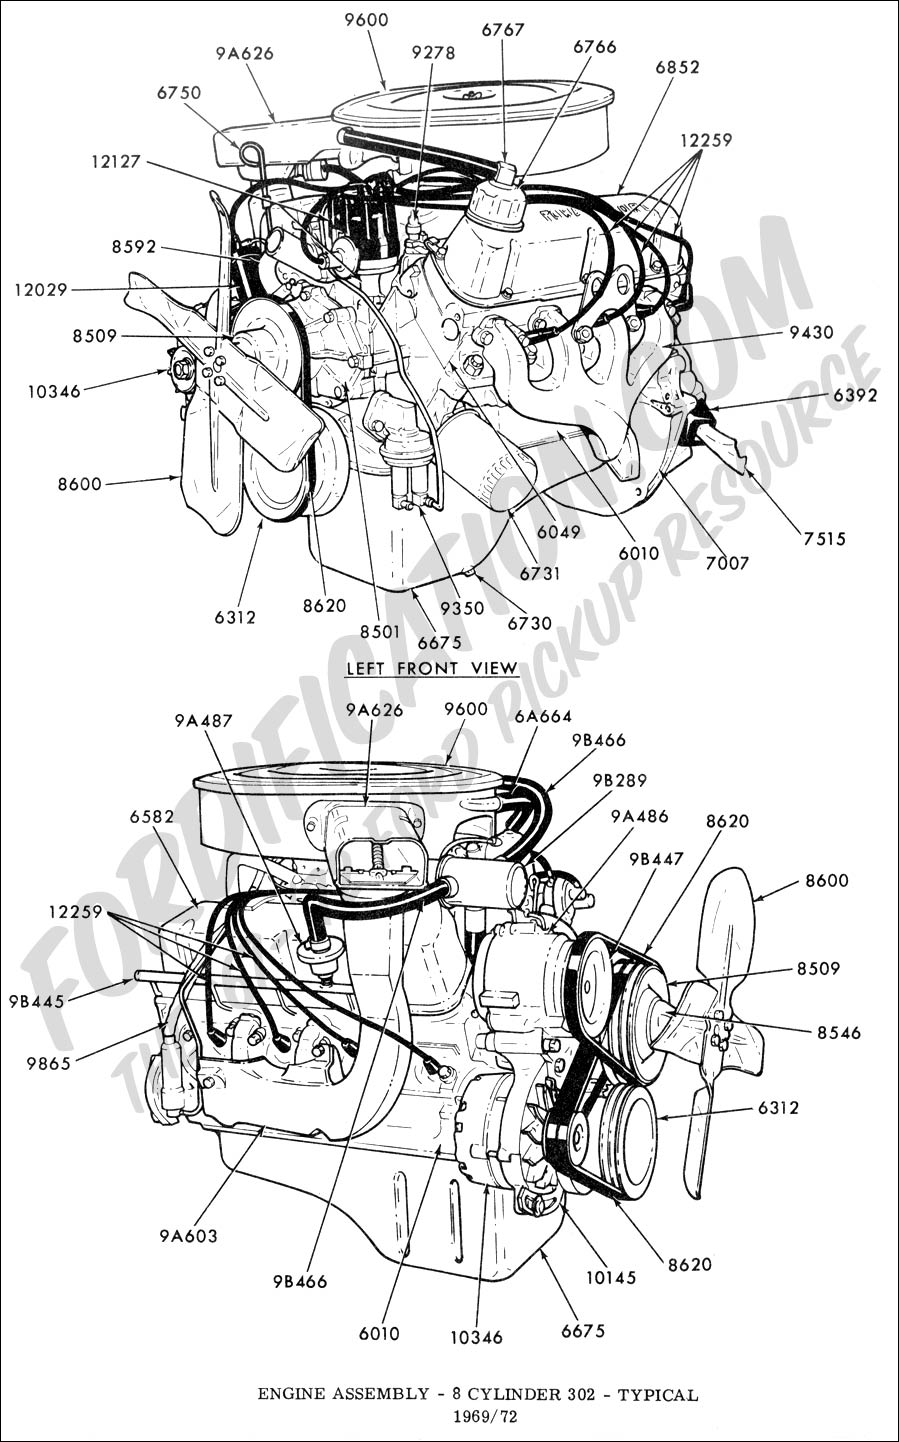 8 Inch Ford Rear End Diagram as well 5wwpq Gm Tahoe 2004 Tahoe 5 3 Routine Maintenance Founf further T13184266 1999 ford ranger 3 0 spark plug wiring moreover 460 Ford Serpentine Belt Diagrams besides 360 Ford V8 Engine Diagram Wallpaper 4. on 2001 ford explorer distributor